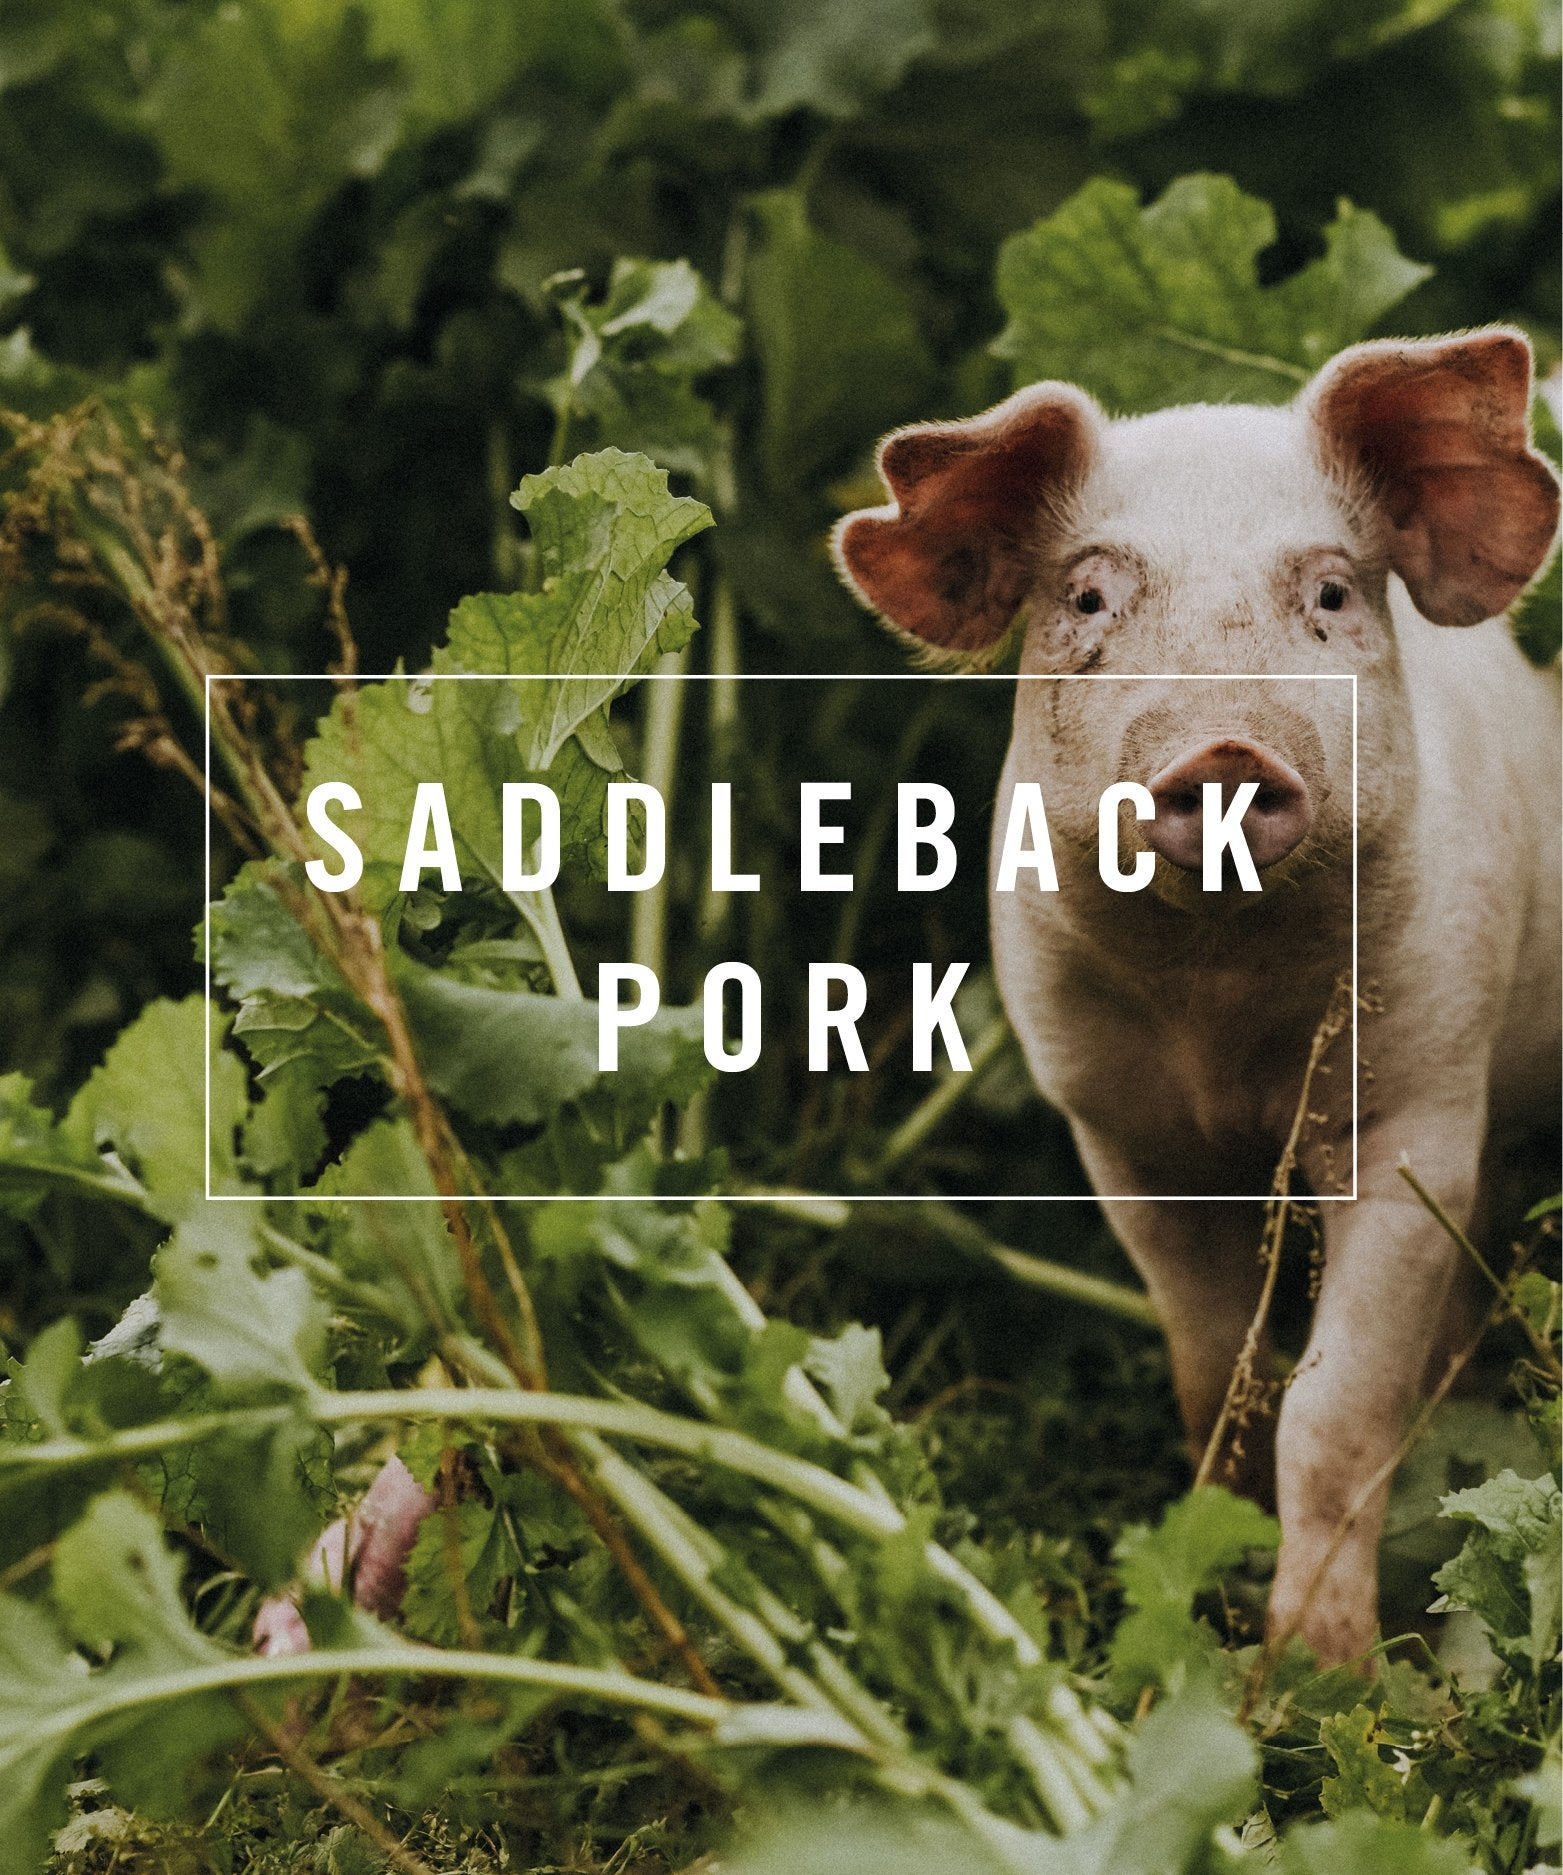 saddleback pork